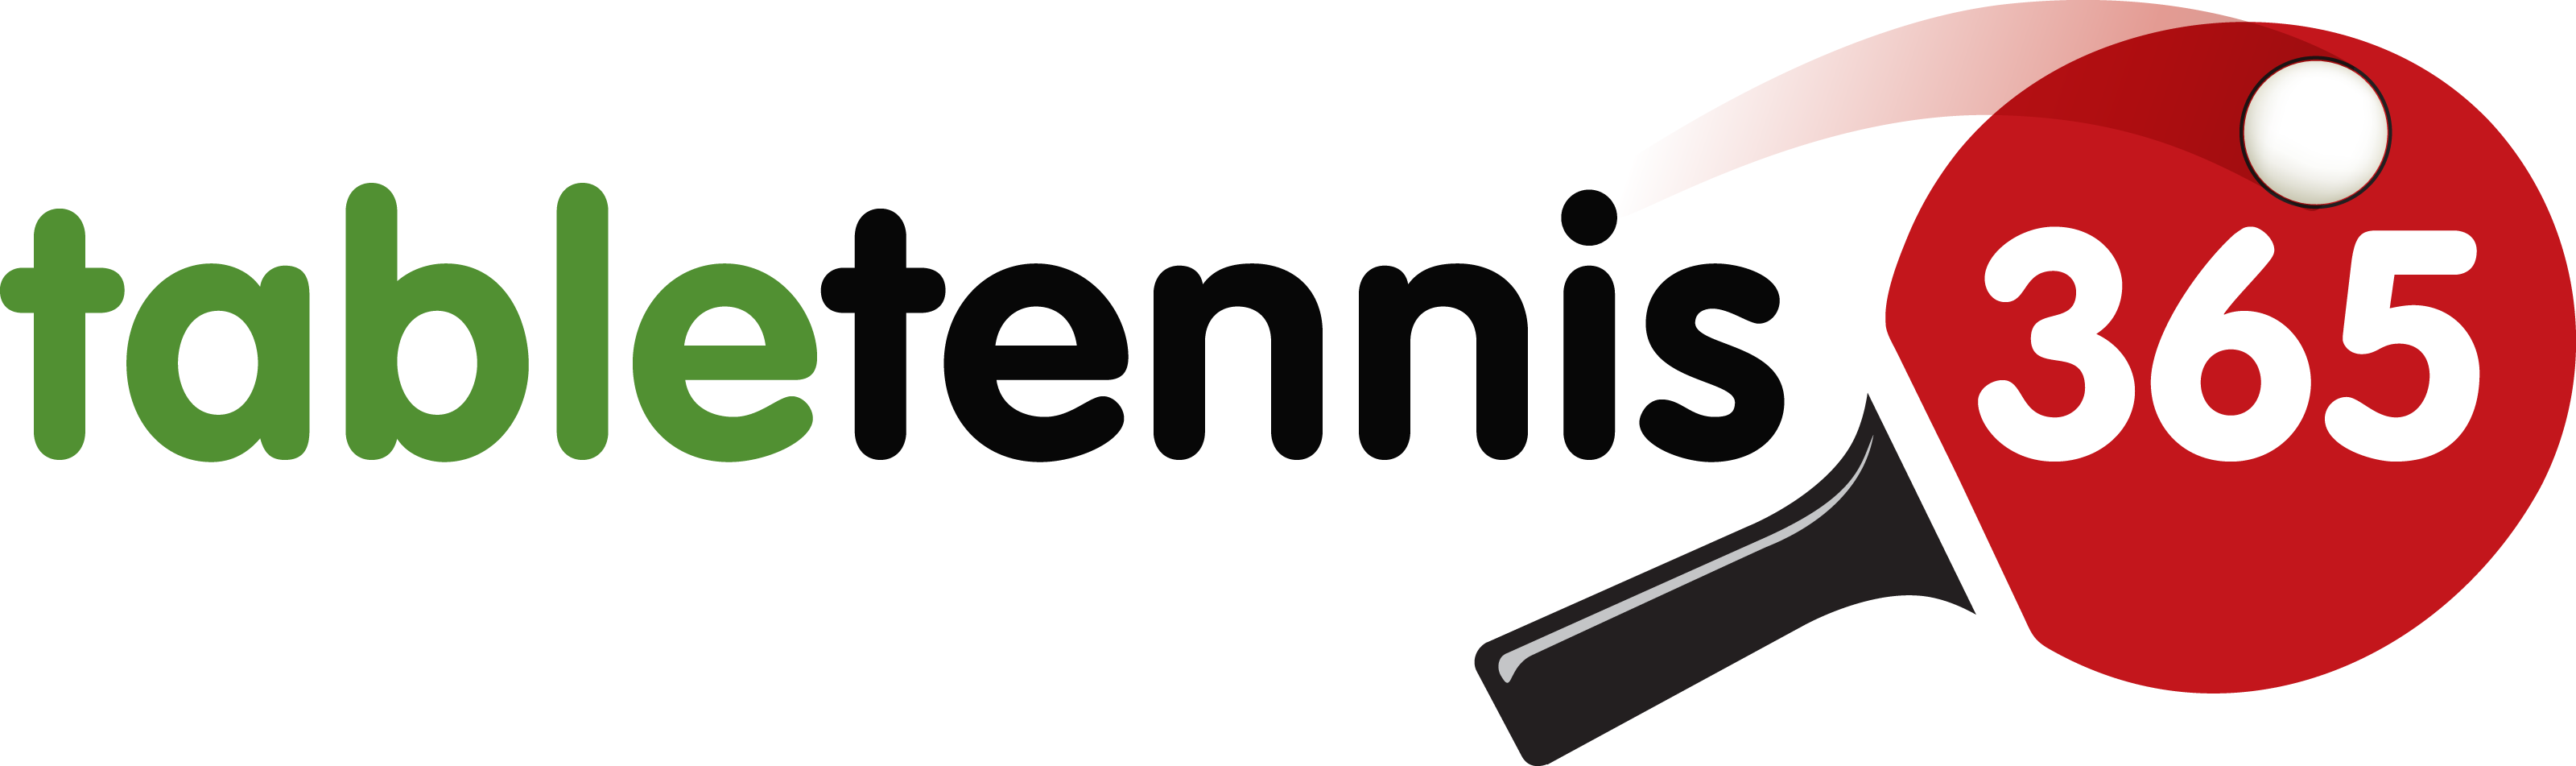 Table Tennis 365 Logo